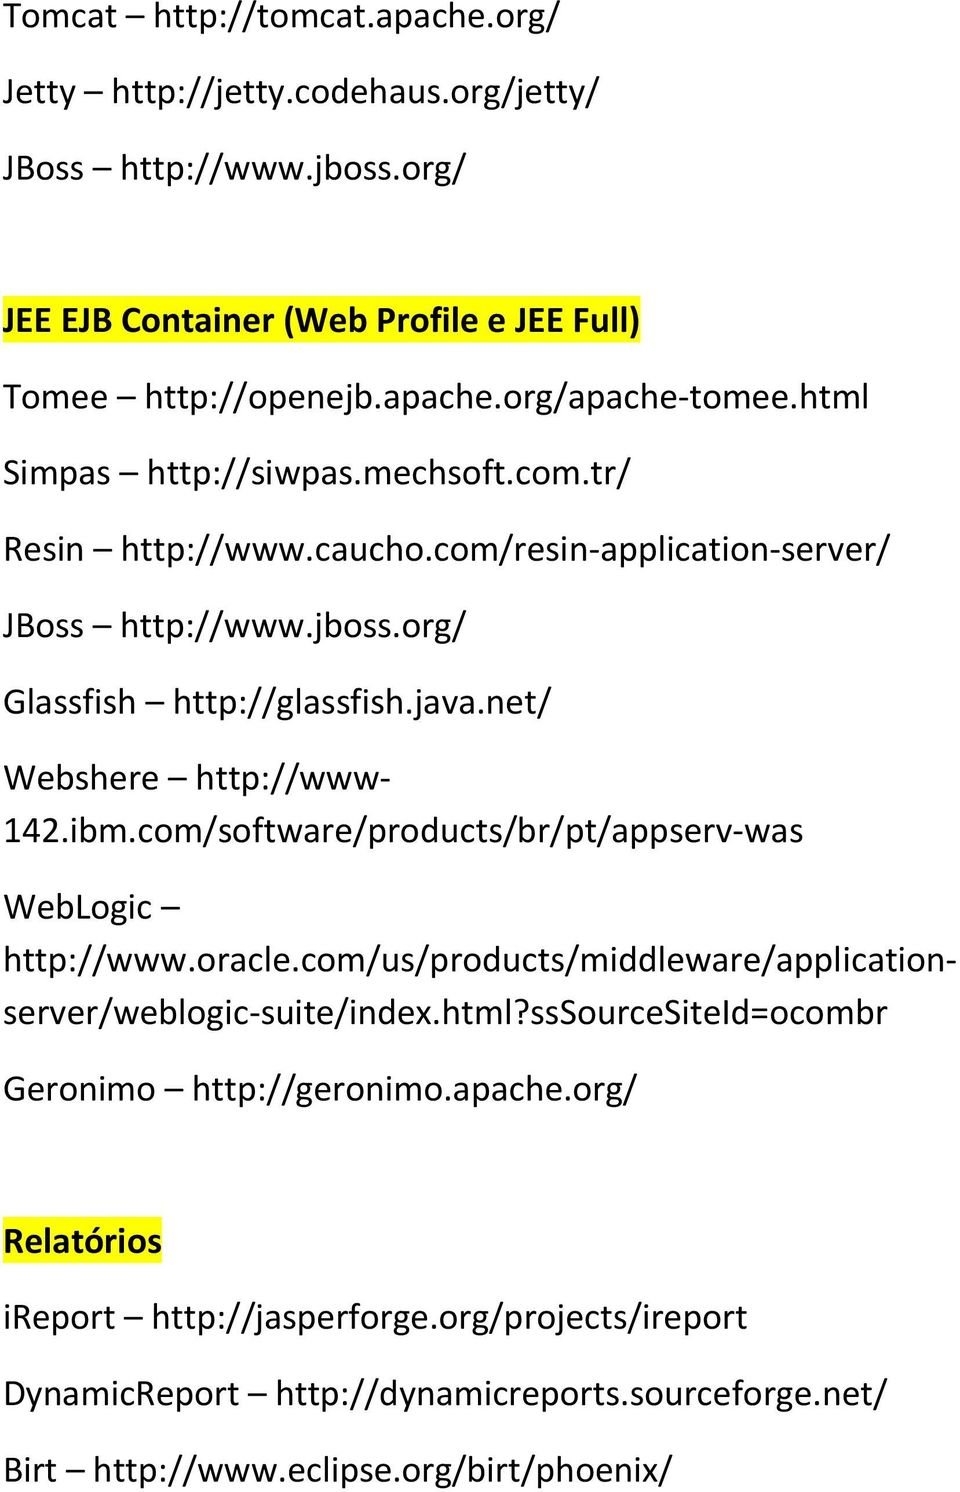 net/ Webshere http://www- 142.ibm.cm/sftware/prducts/br/pt/appserv-was WebLgic http://www.racle.cm/us/prducts/middleware/applicatinserver/weblgic-suite/index.html?